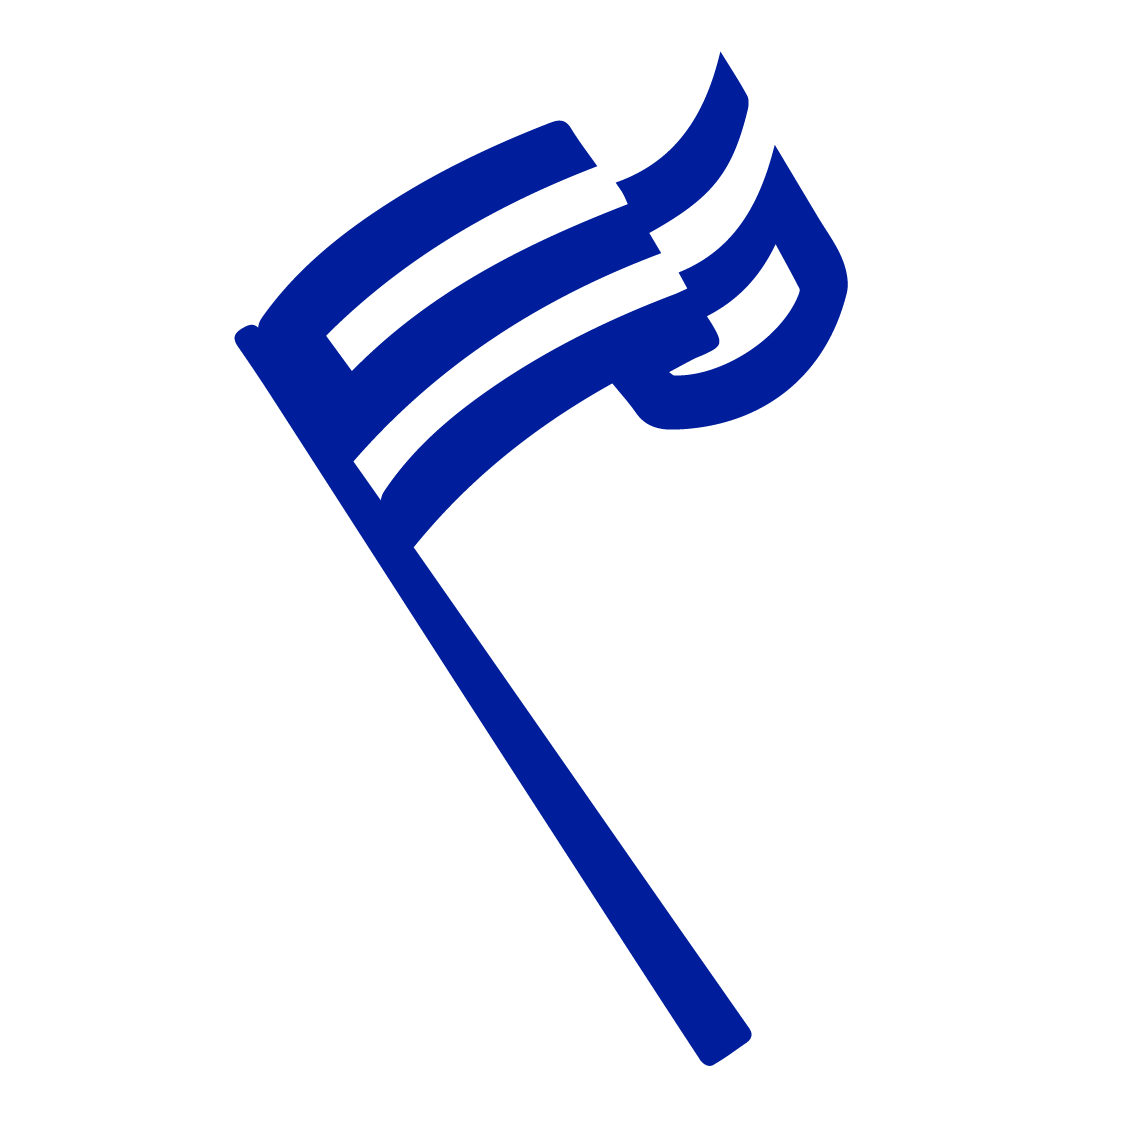 SIL-FLAG-BLUE.png